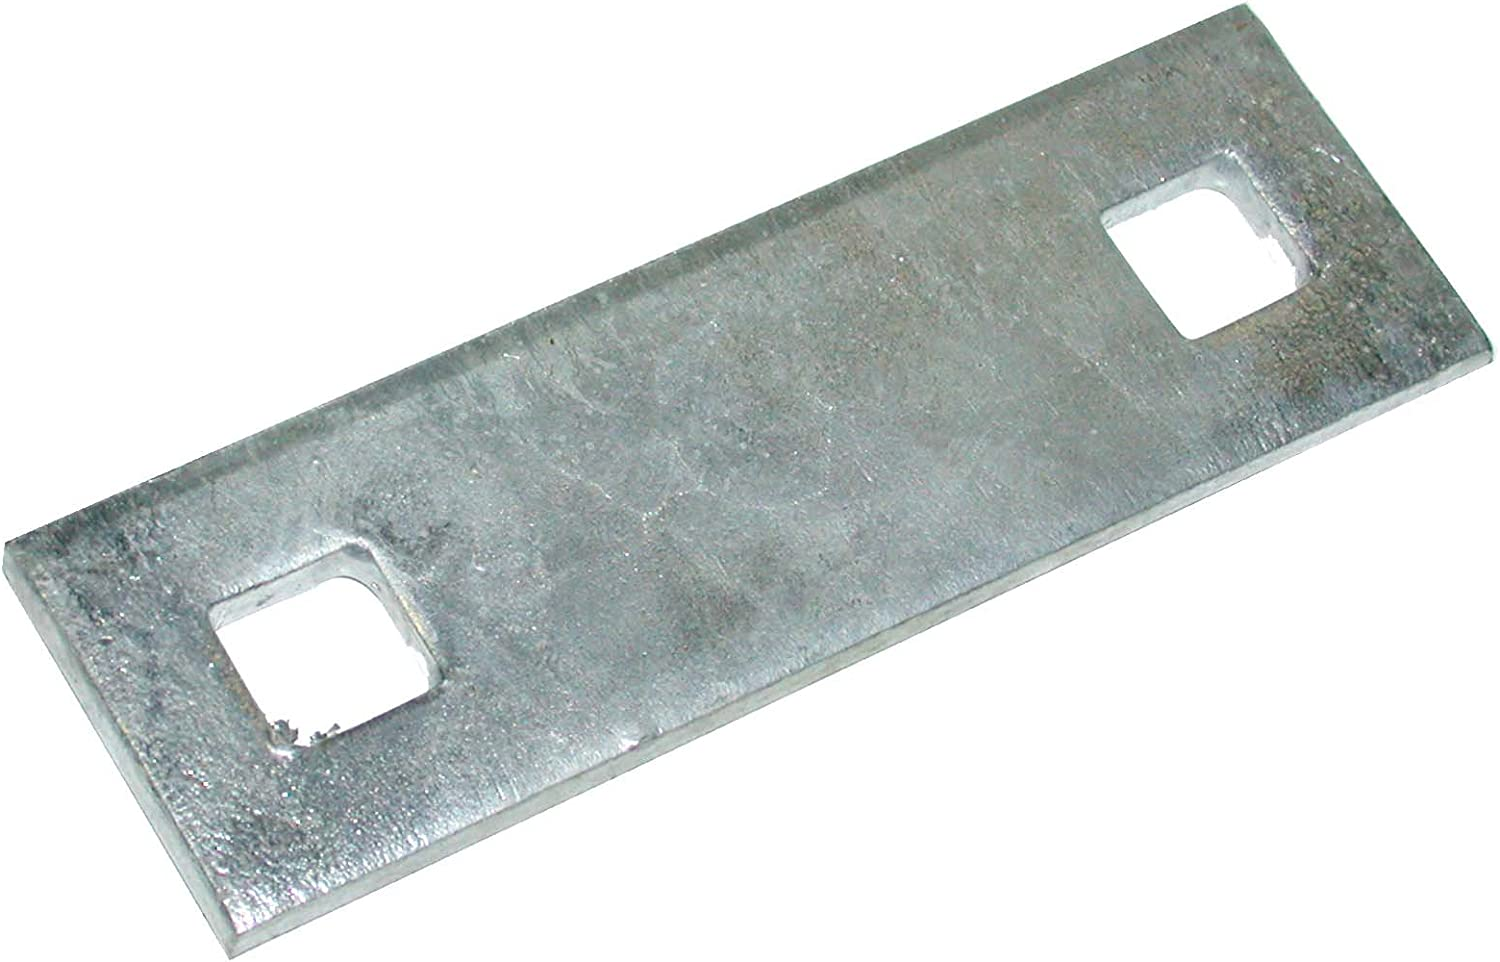 Dock Hardware Department store Lot of 24 DH-W Washer Galvanized Dedication Steel Plate